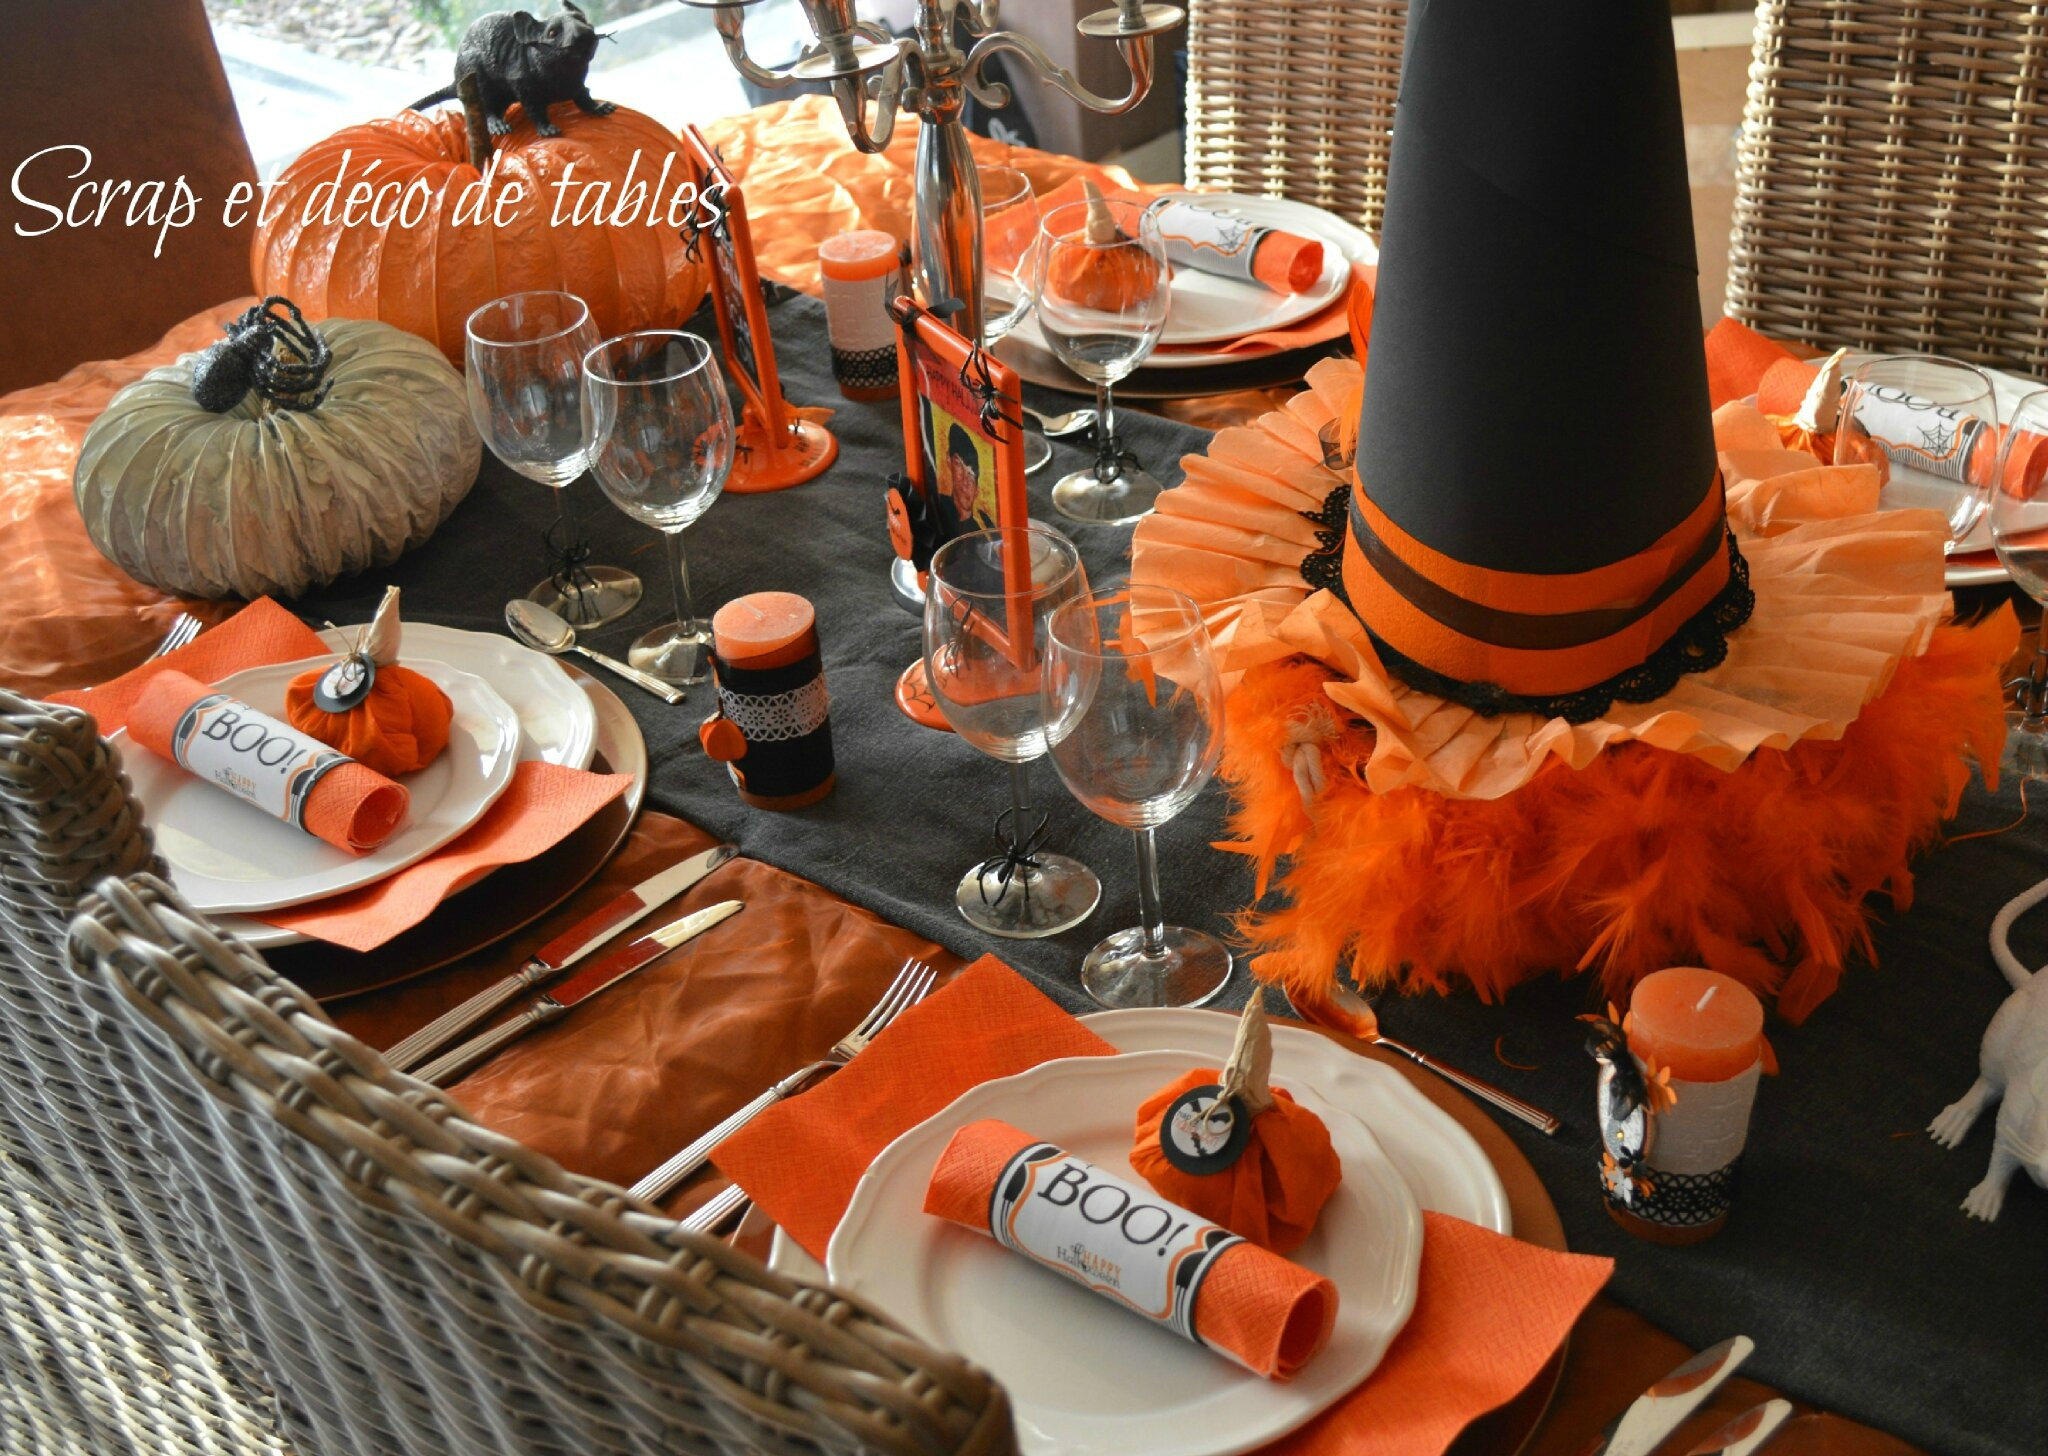 deco de tables halloween 2013 scrap et d co de tables. Black Bedroom Furniture Sets. Home Design Ideas